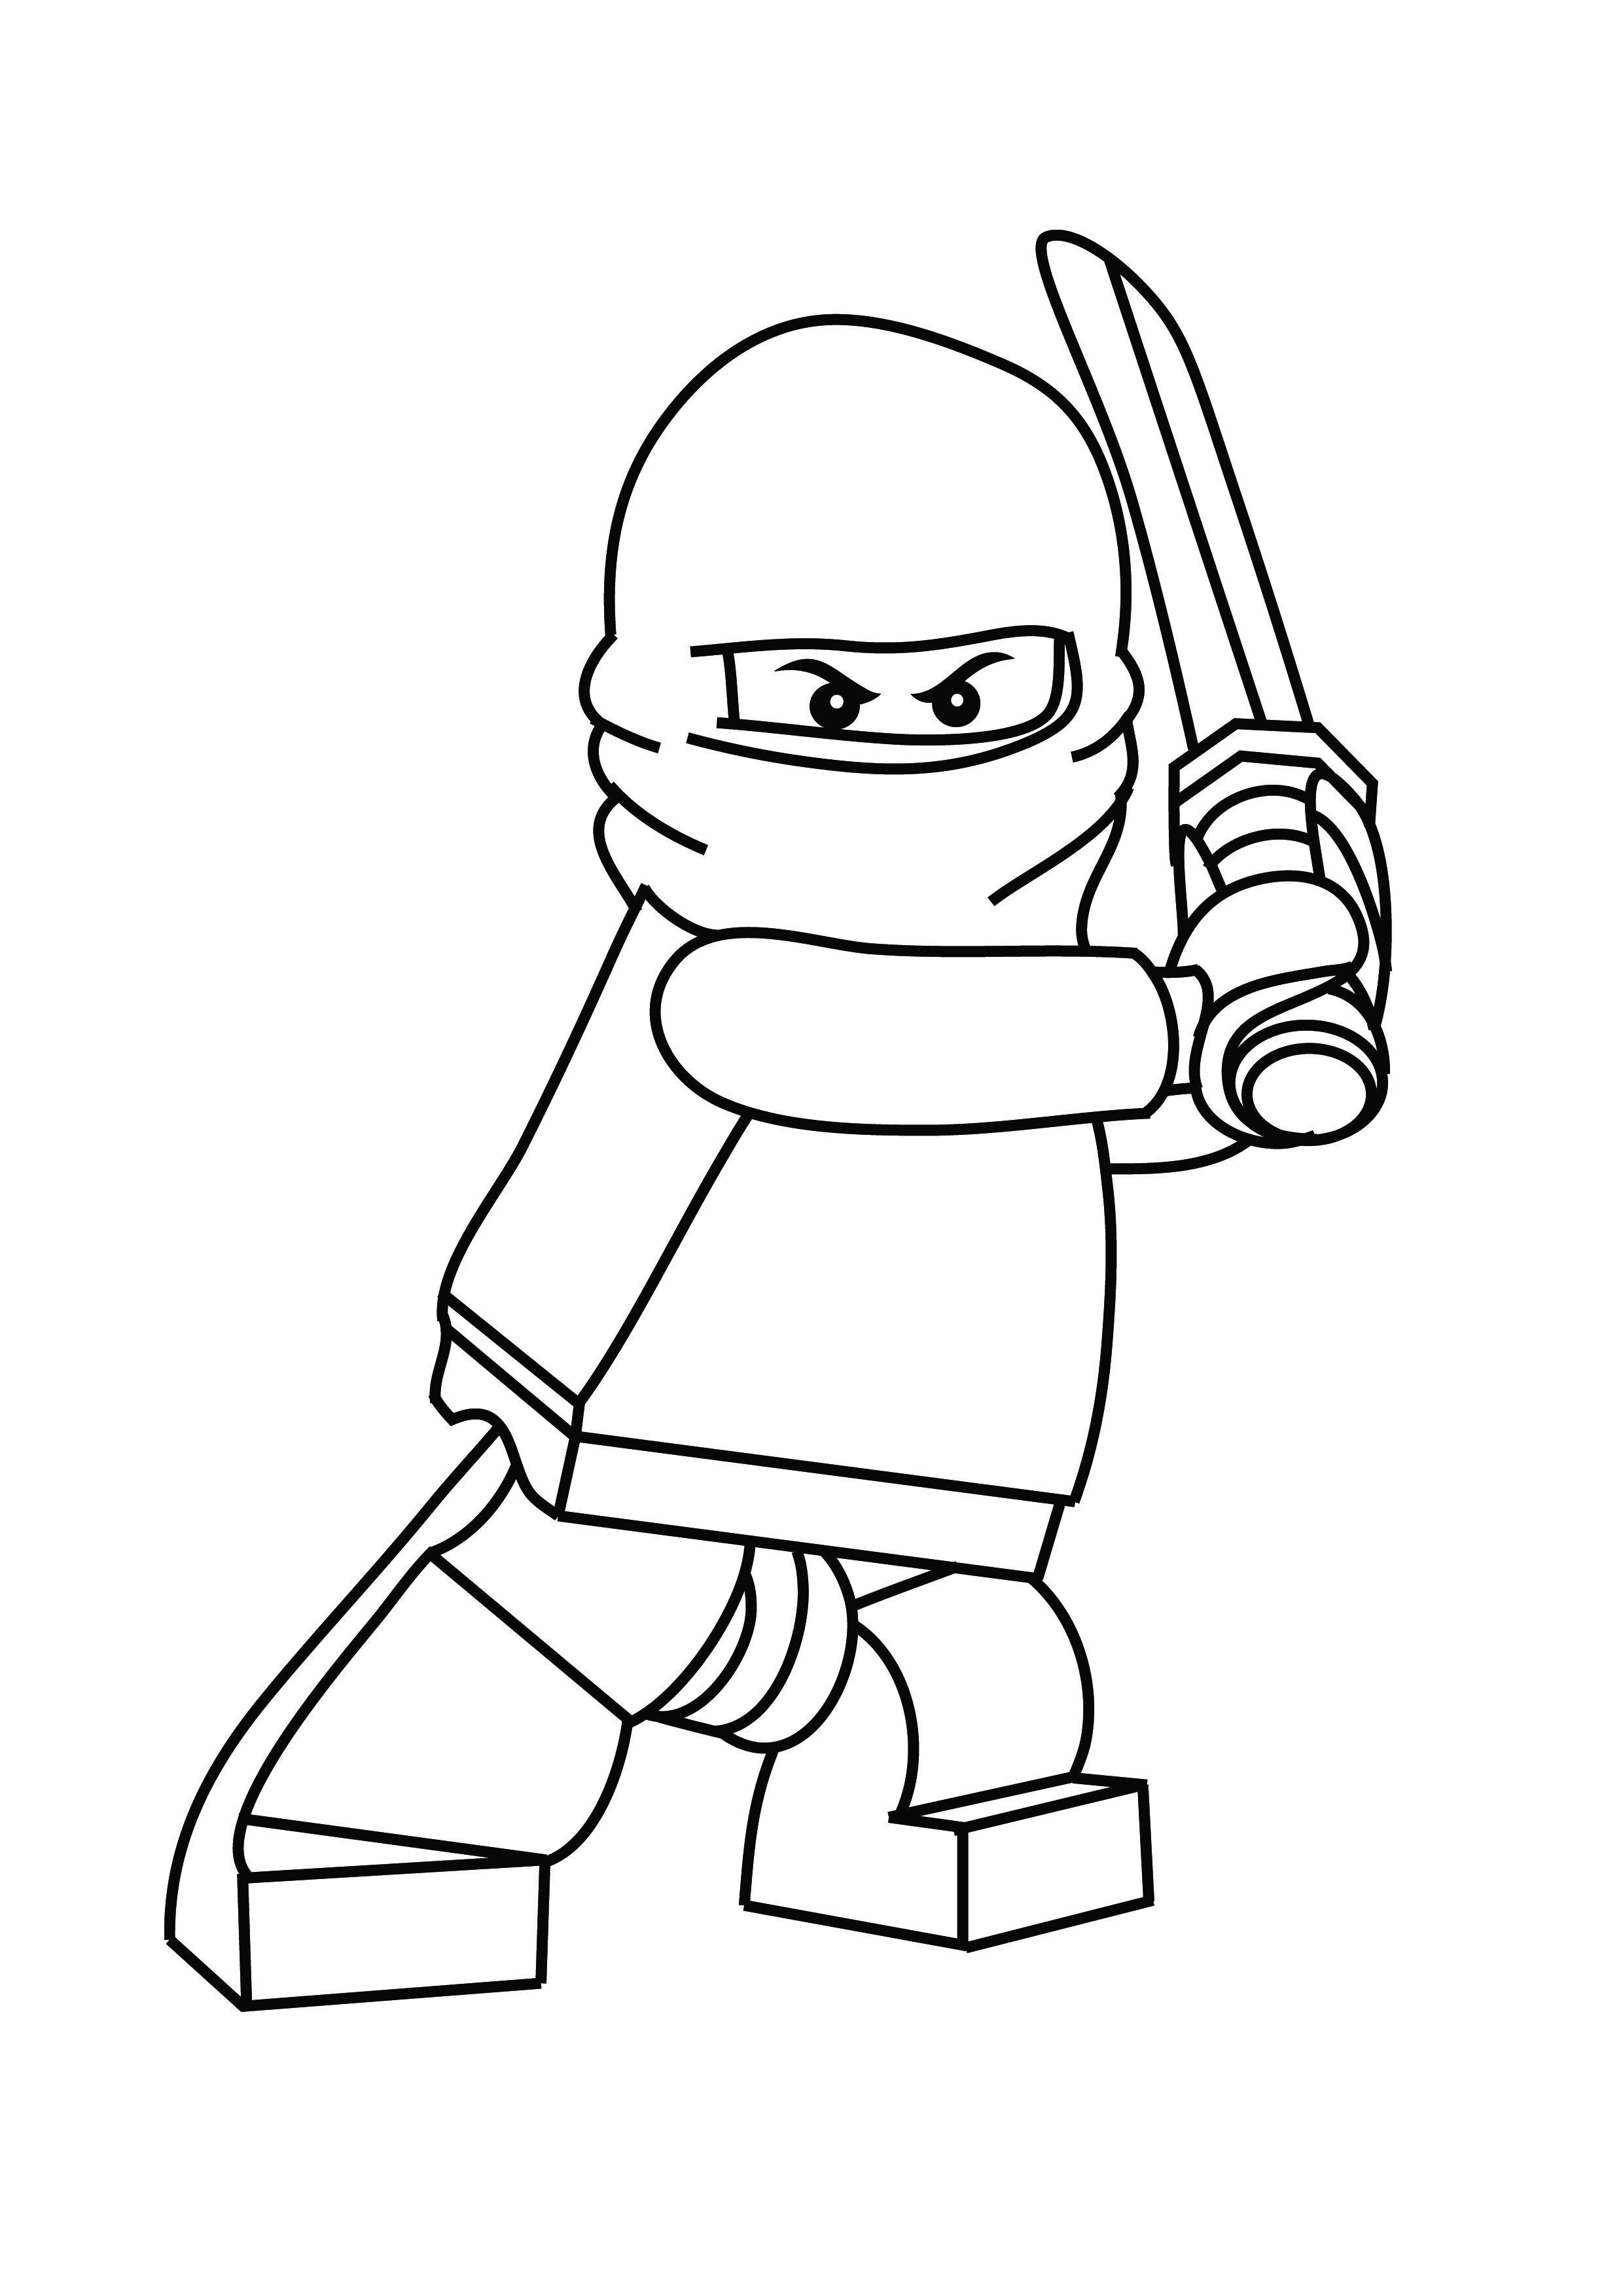 lego colouring in create your own lego coloring pages for kids in lego colouring